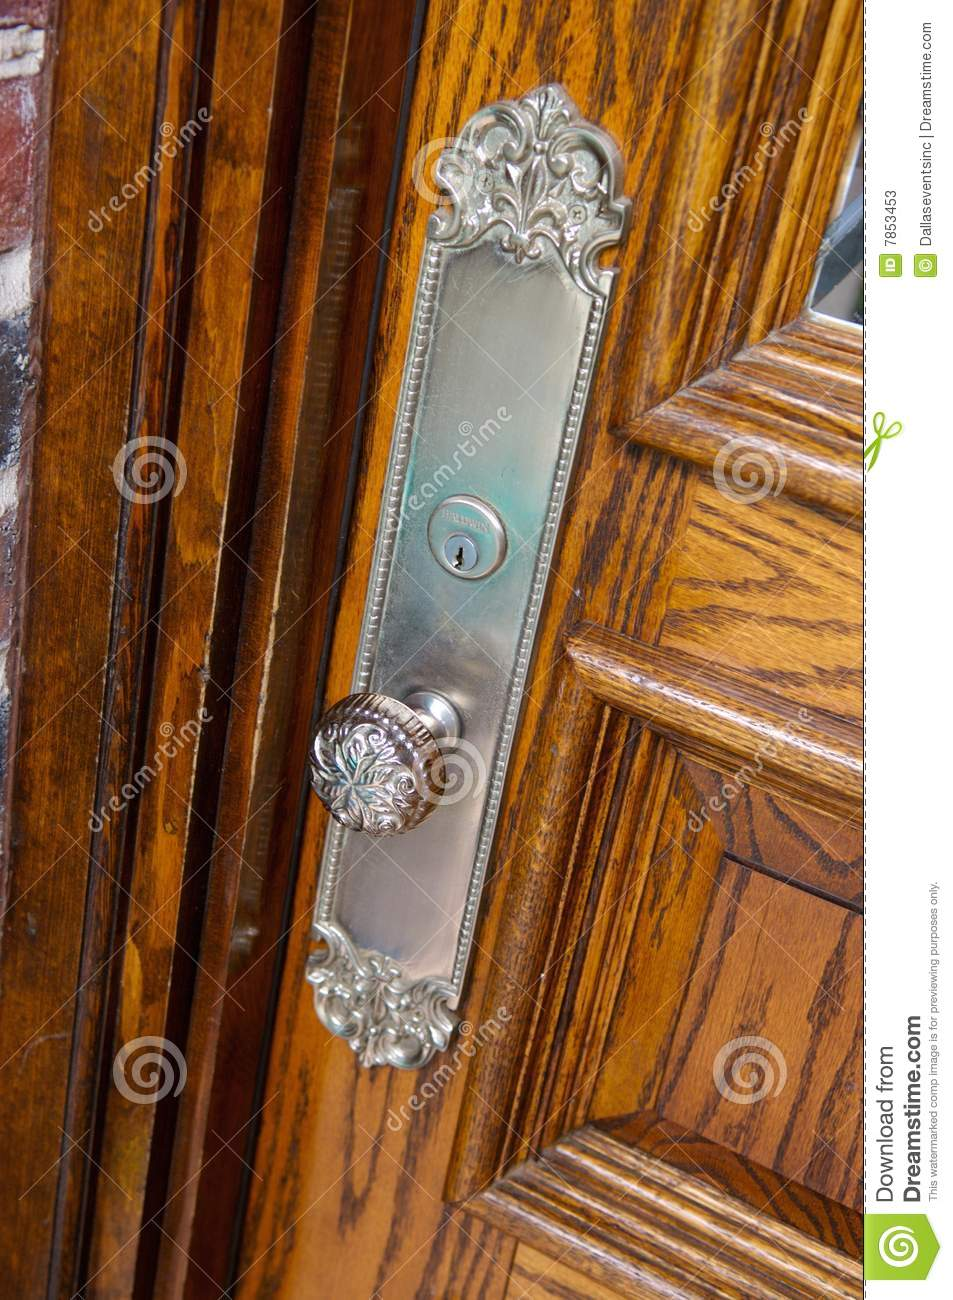 Up Close Image Of N Antique Door Knob Stock Image Image